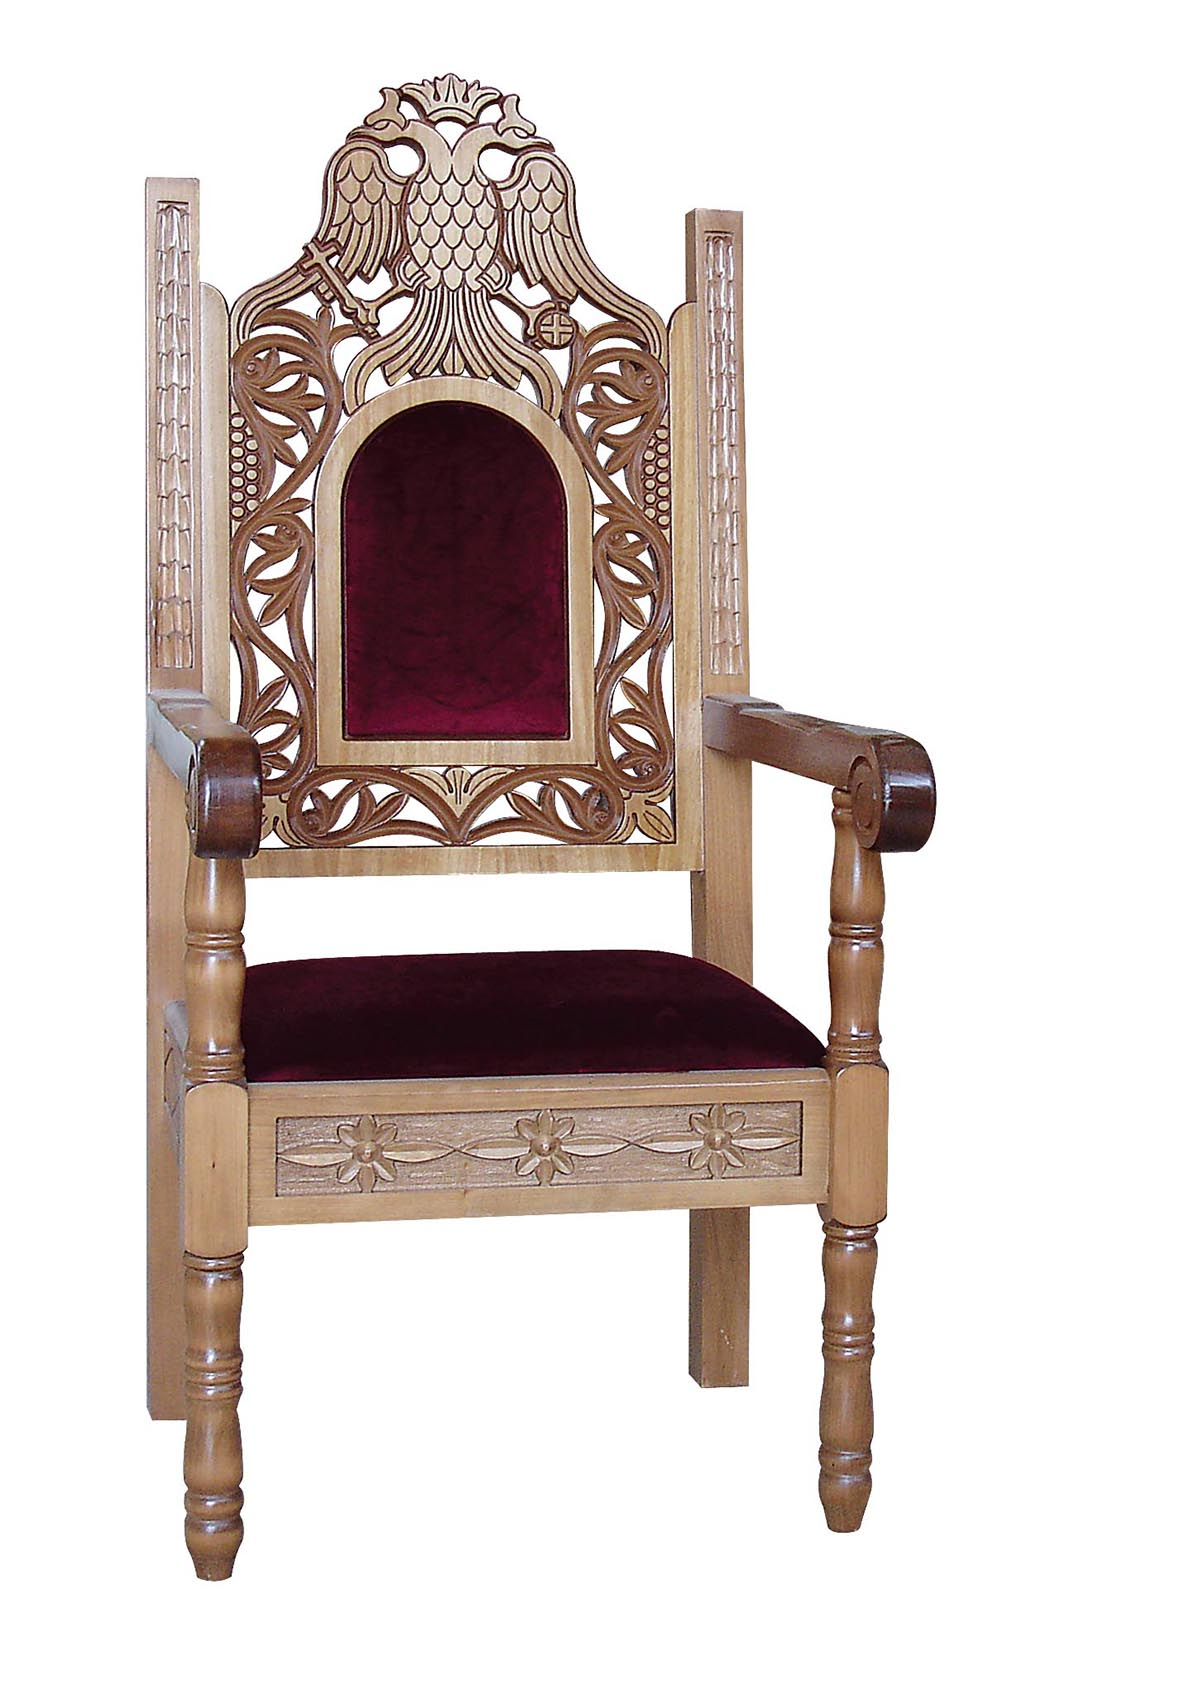 Bishop's Chair Alpha Omega Church Supplies Orthodox Ecclesiastical Art